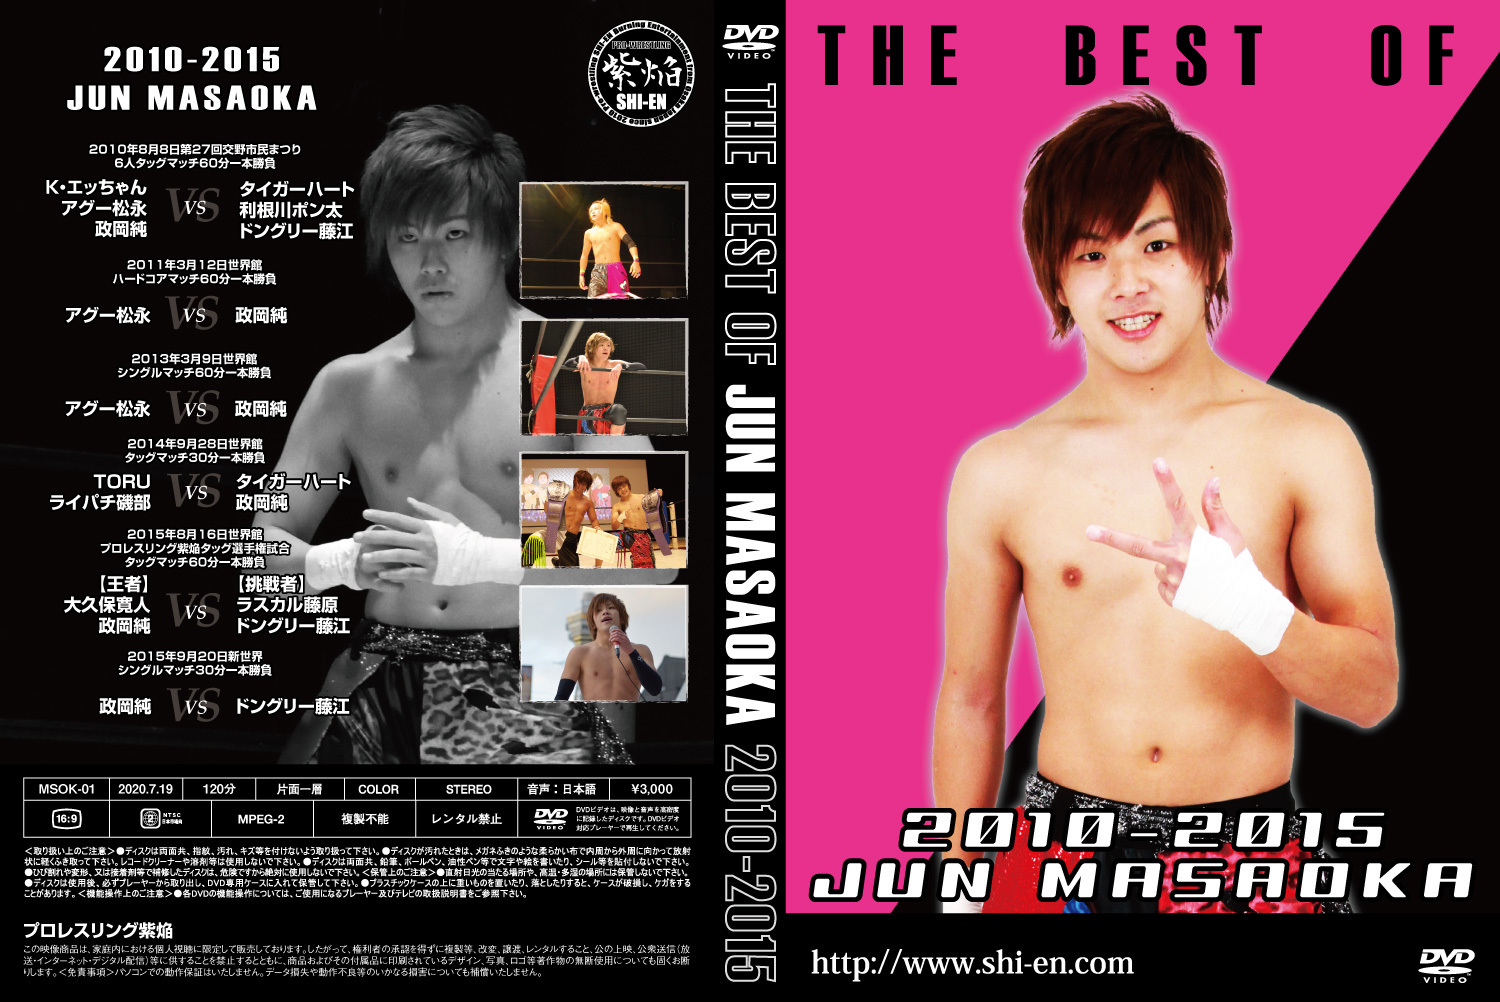 BEST OF THE 政岡純 2010-2015